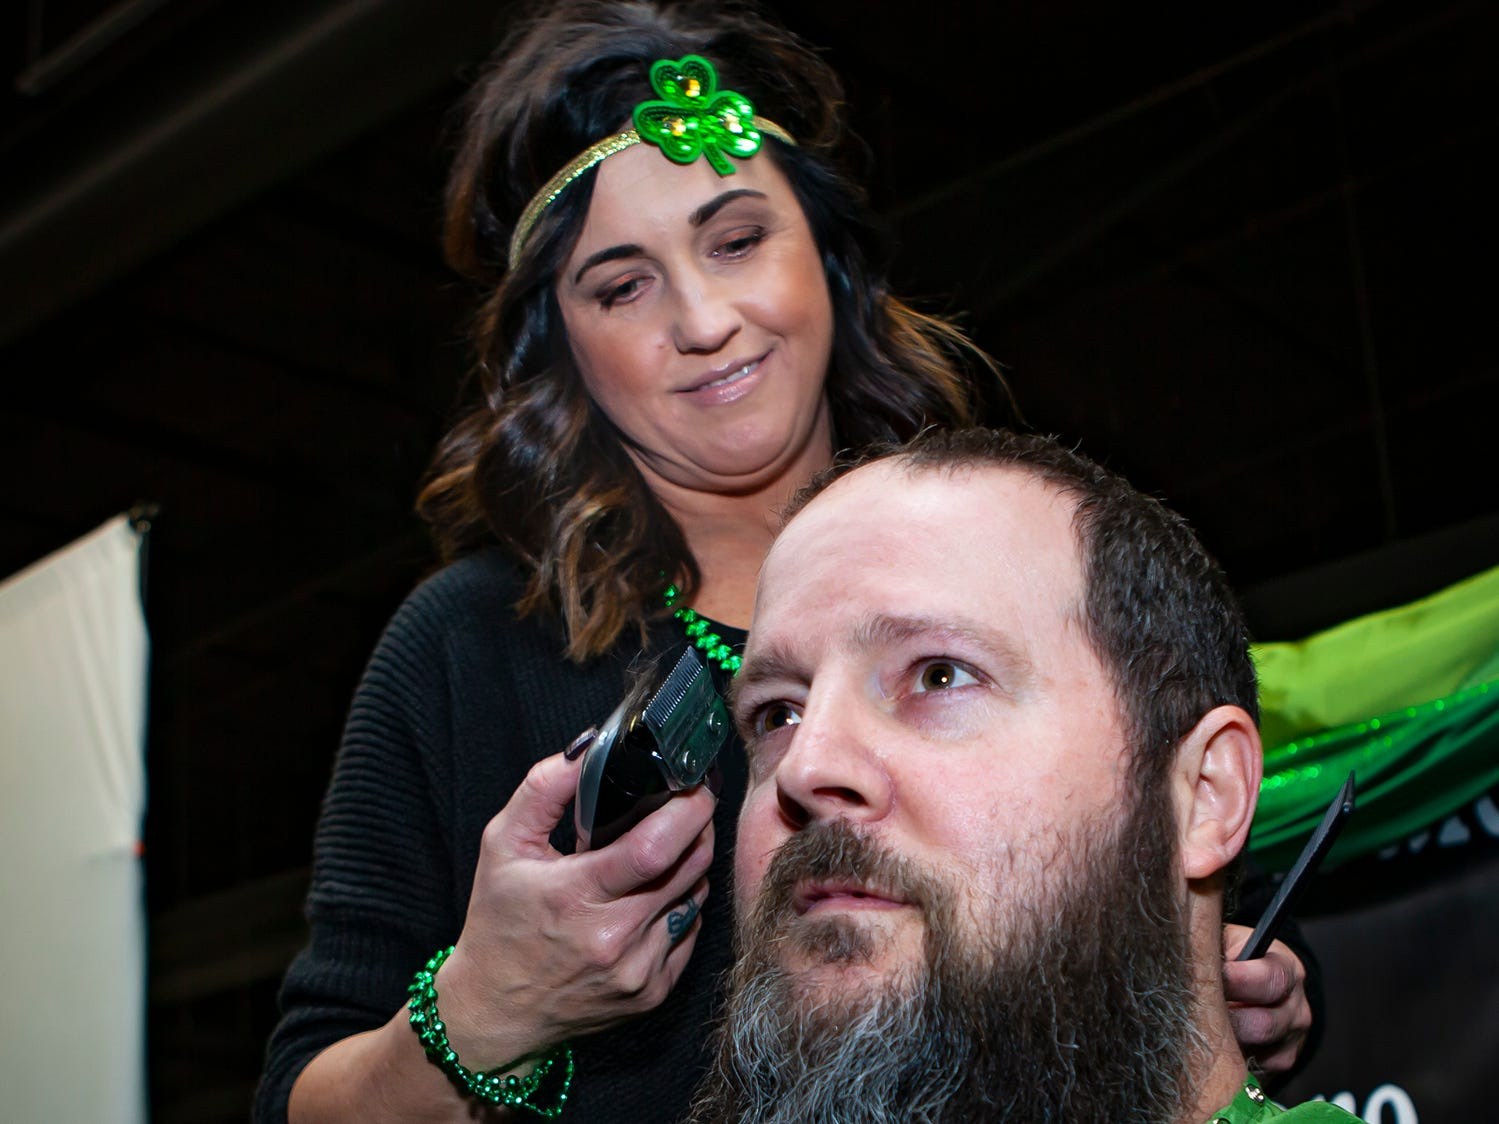 Bill Wilkes braves the shave for the first time at the ninth annual Bald in the Boro fundraiser for the St. Baldrick's Foundation. The event was held Friday, March 15, 2019 at Lanes, Trains and Automobiles in Murfreesboro.